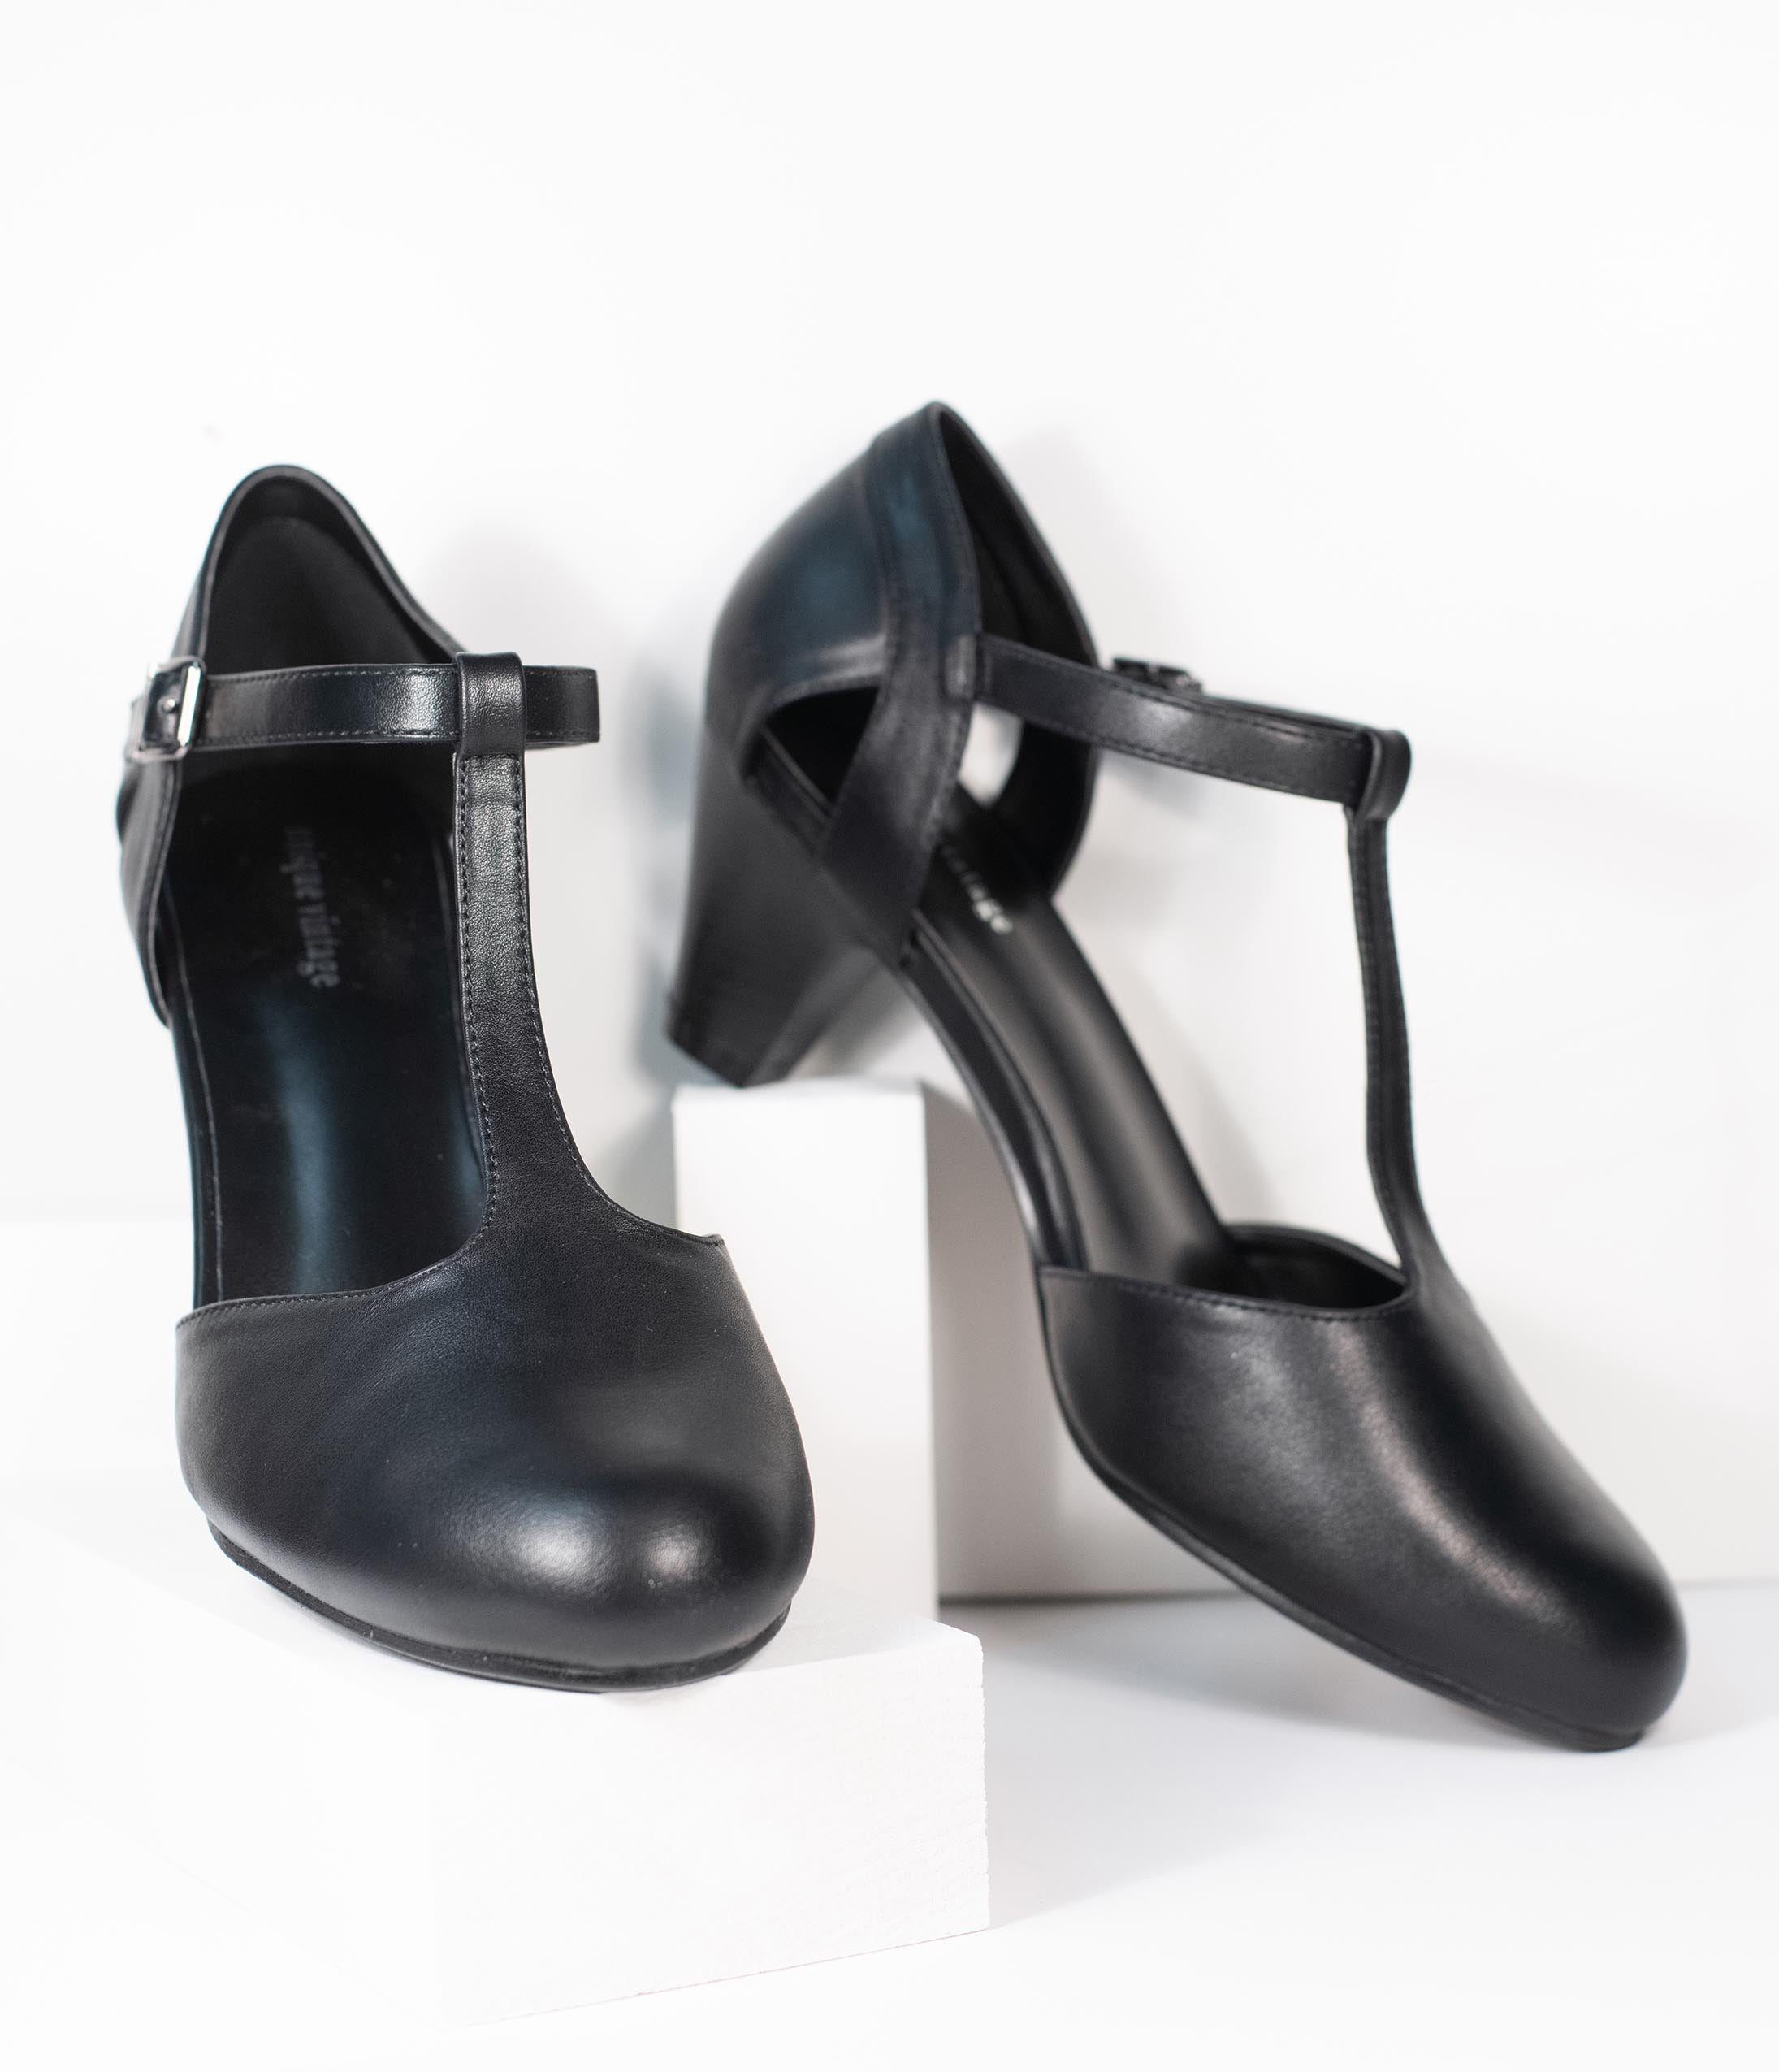 1930s Costumes- Bride of Frankenstein, Betty Boop, Olive Oyl, Bonnie & Clyde Unique Vintage Black Leatherette Closed Toe T-Strap Roxy Pumps $48.00 AT vintagedancer.com